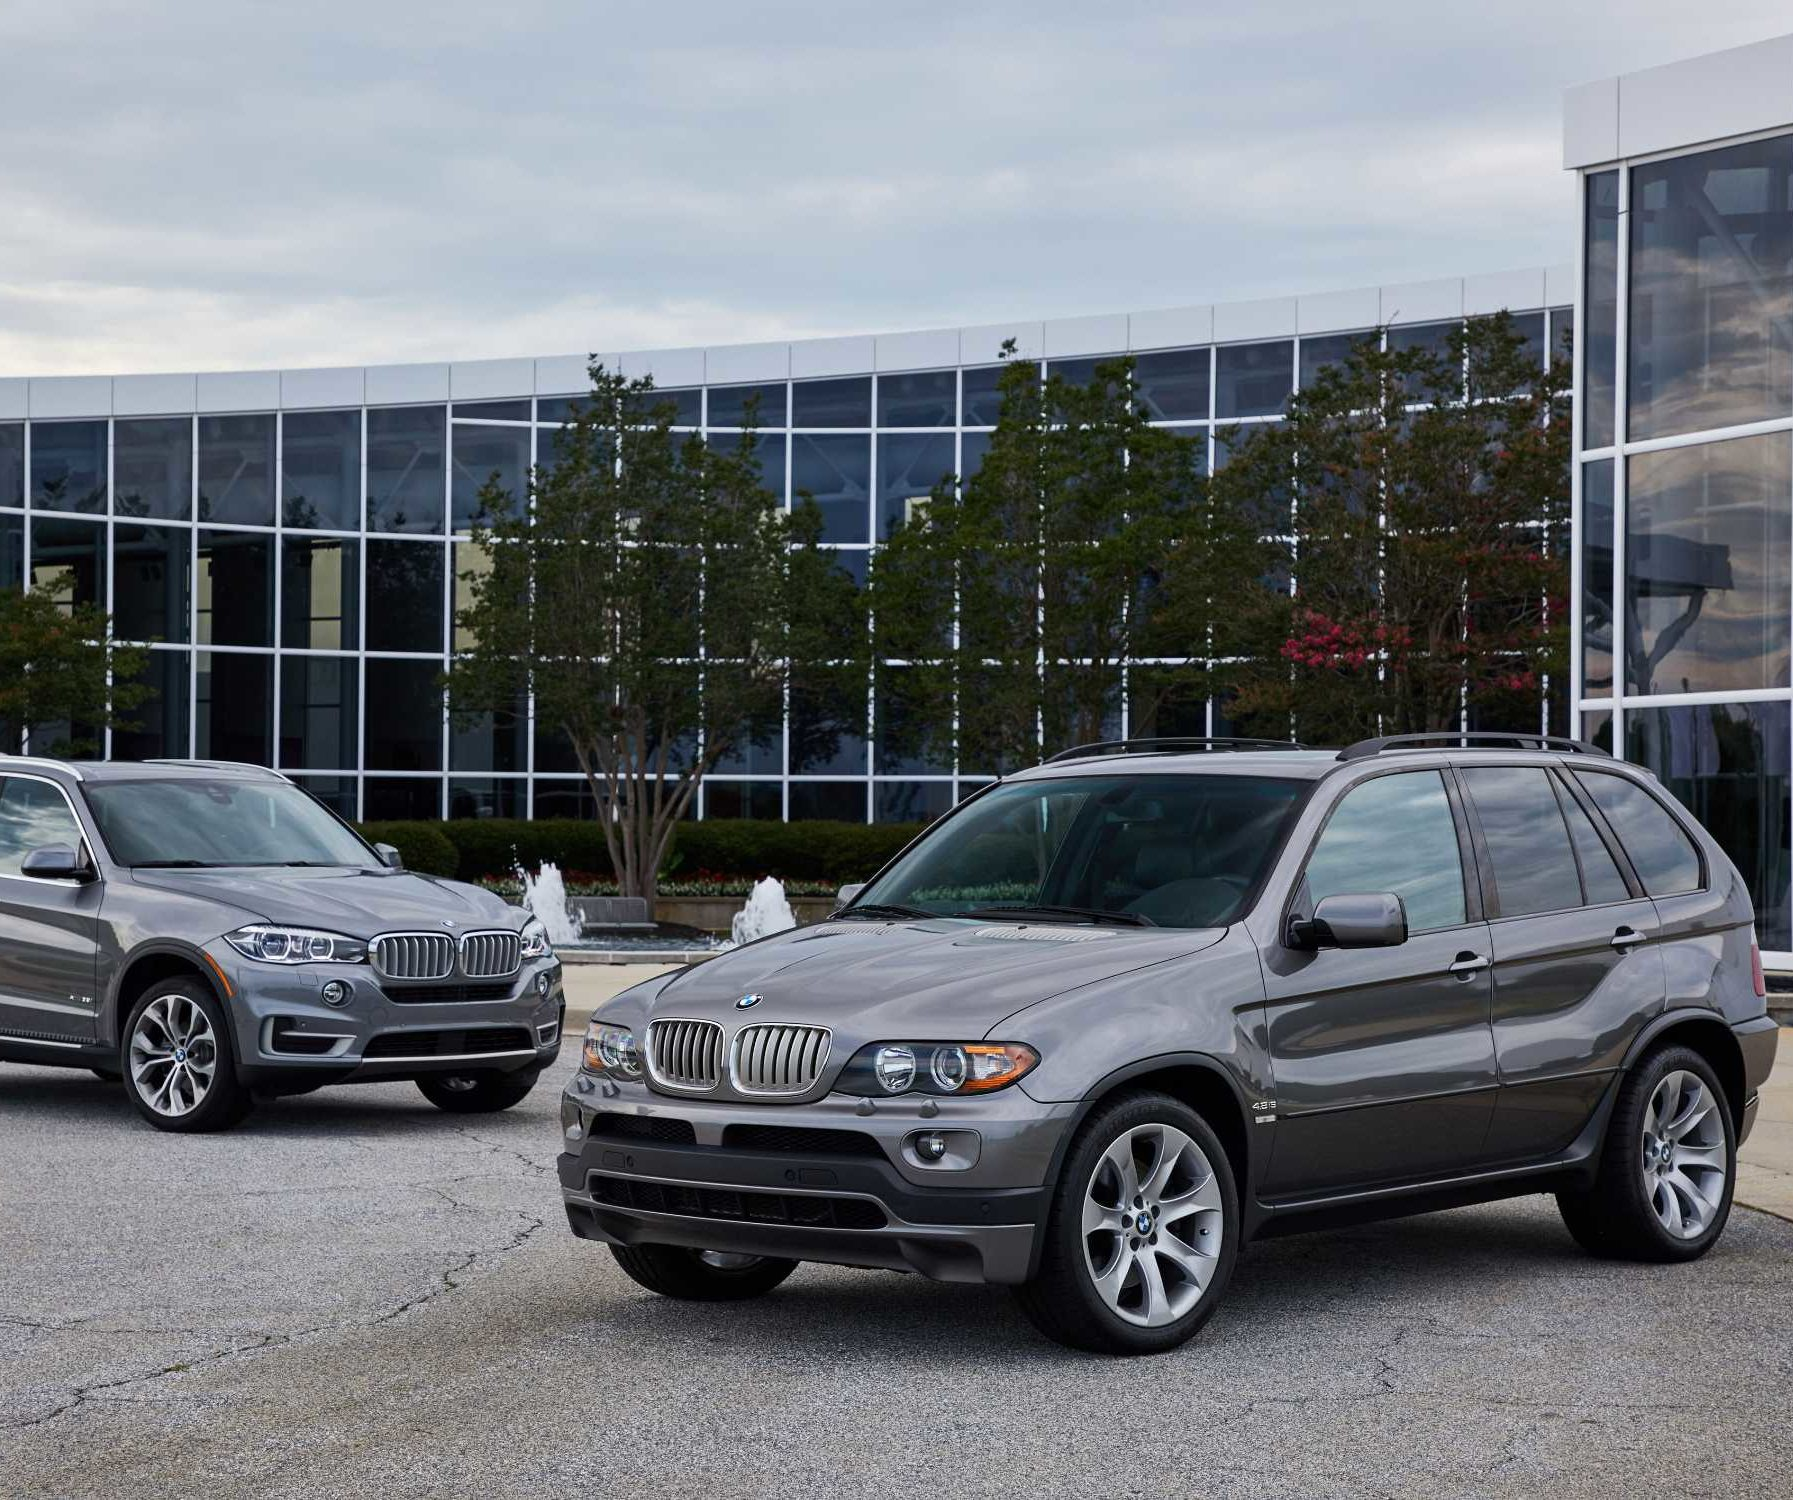 Bmw Years: BMW Group Plant Spartanburg Becomes Largest Production